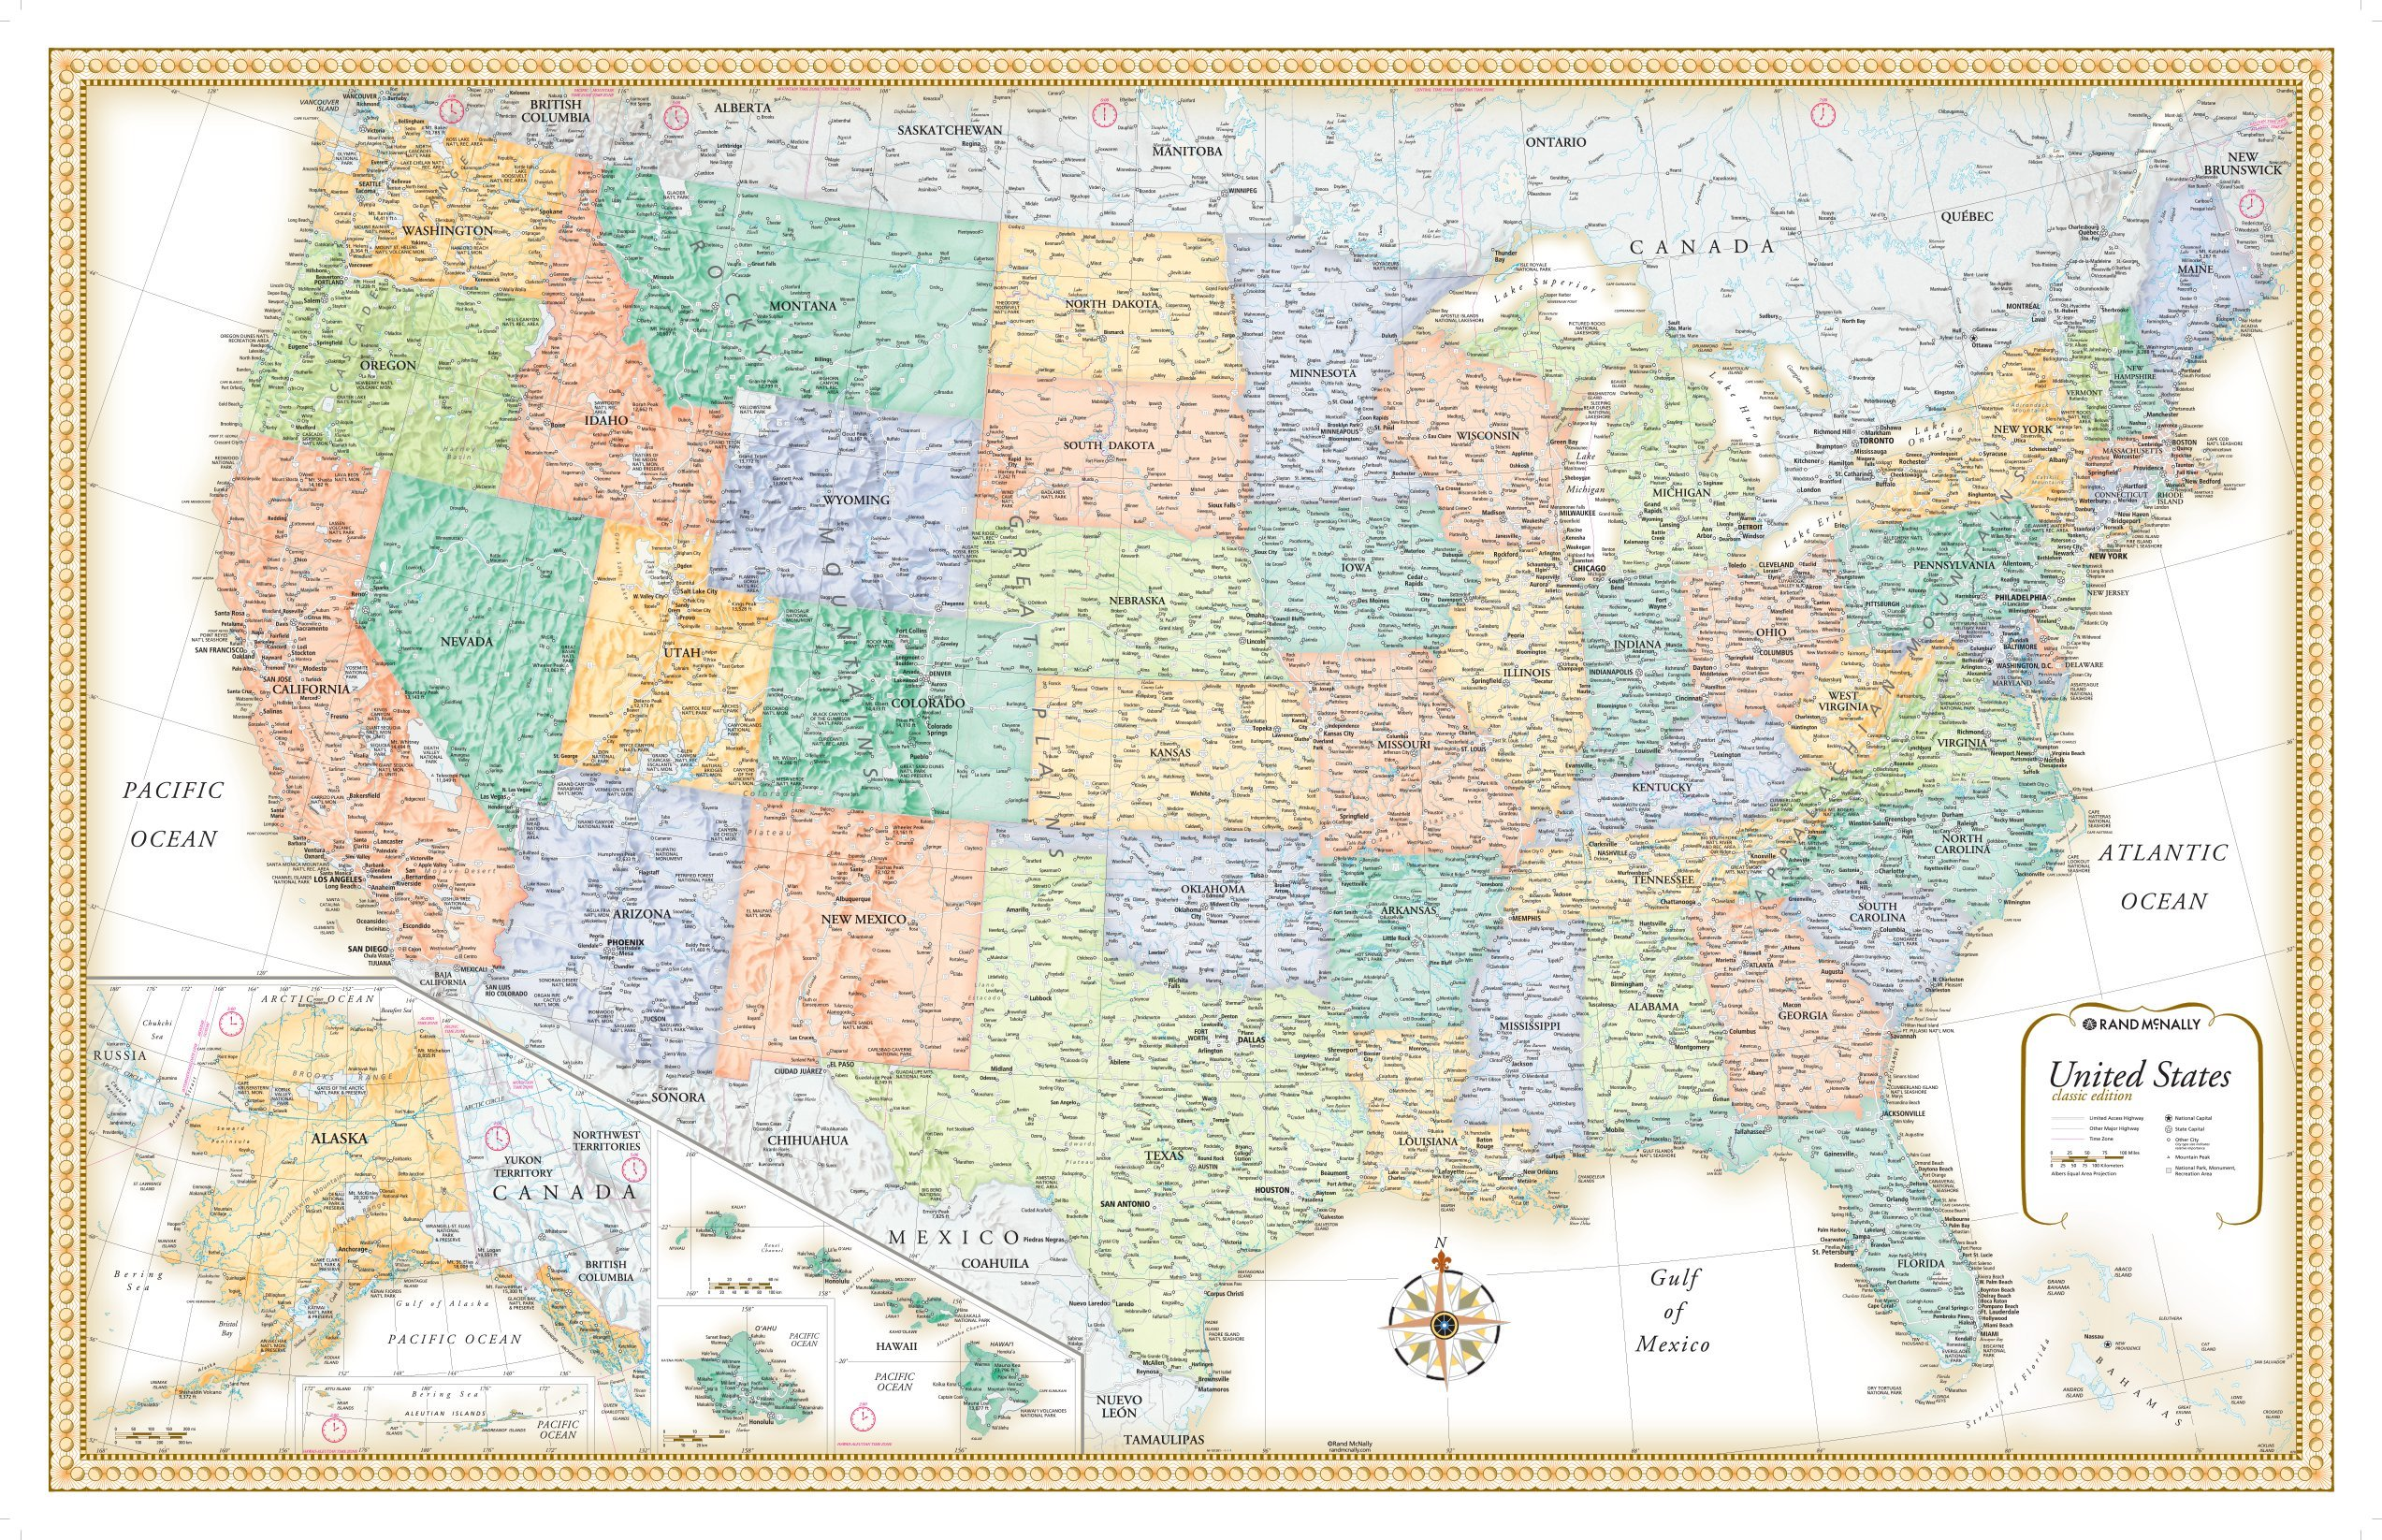 Map Of The United States Map Of The United States.Rmc Classic Edition World Wall Map Poster